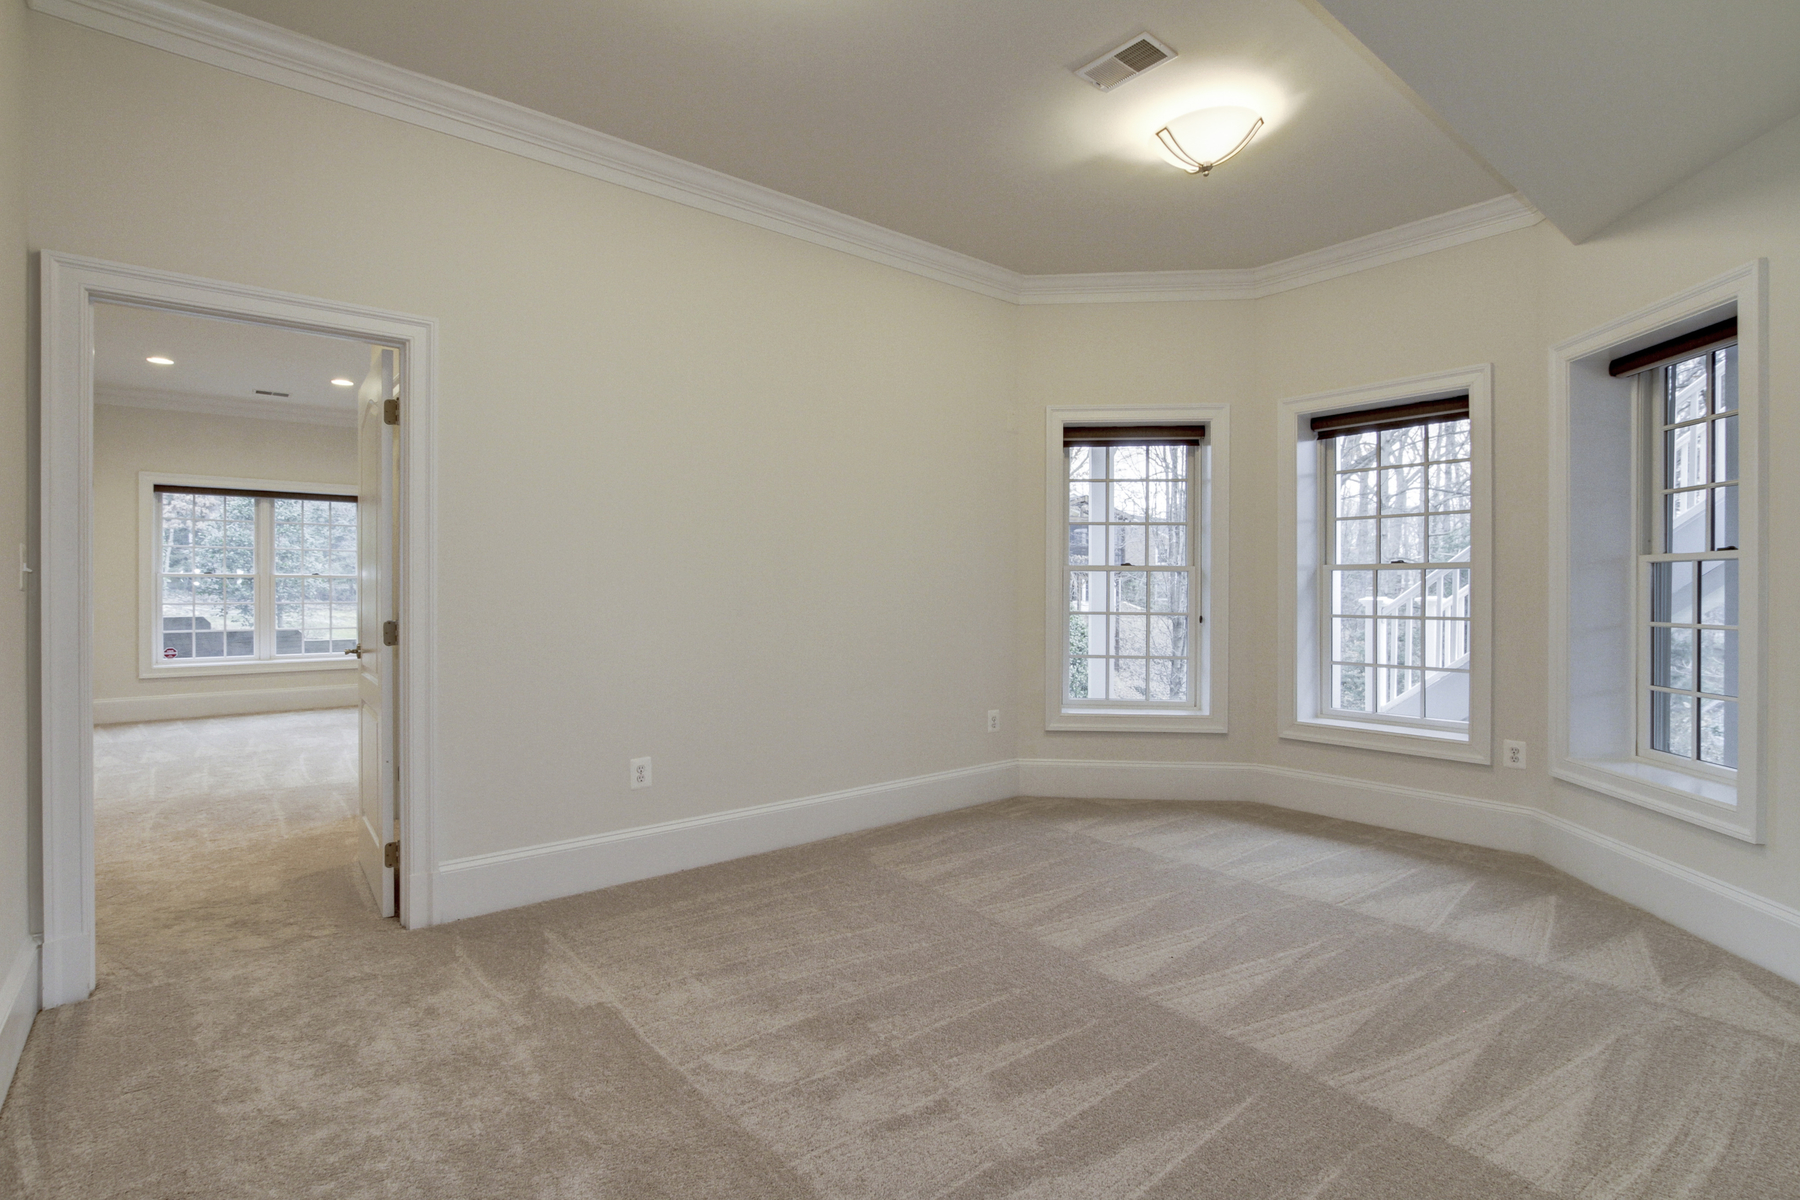 Additional photo for property listing at Bellevue Forest 3133 Piedmont St N Arlington, Βιρτζινια 22207 Ηνωμενεσ Πολιτειεσ